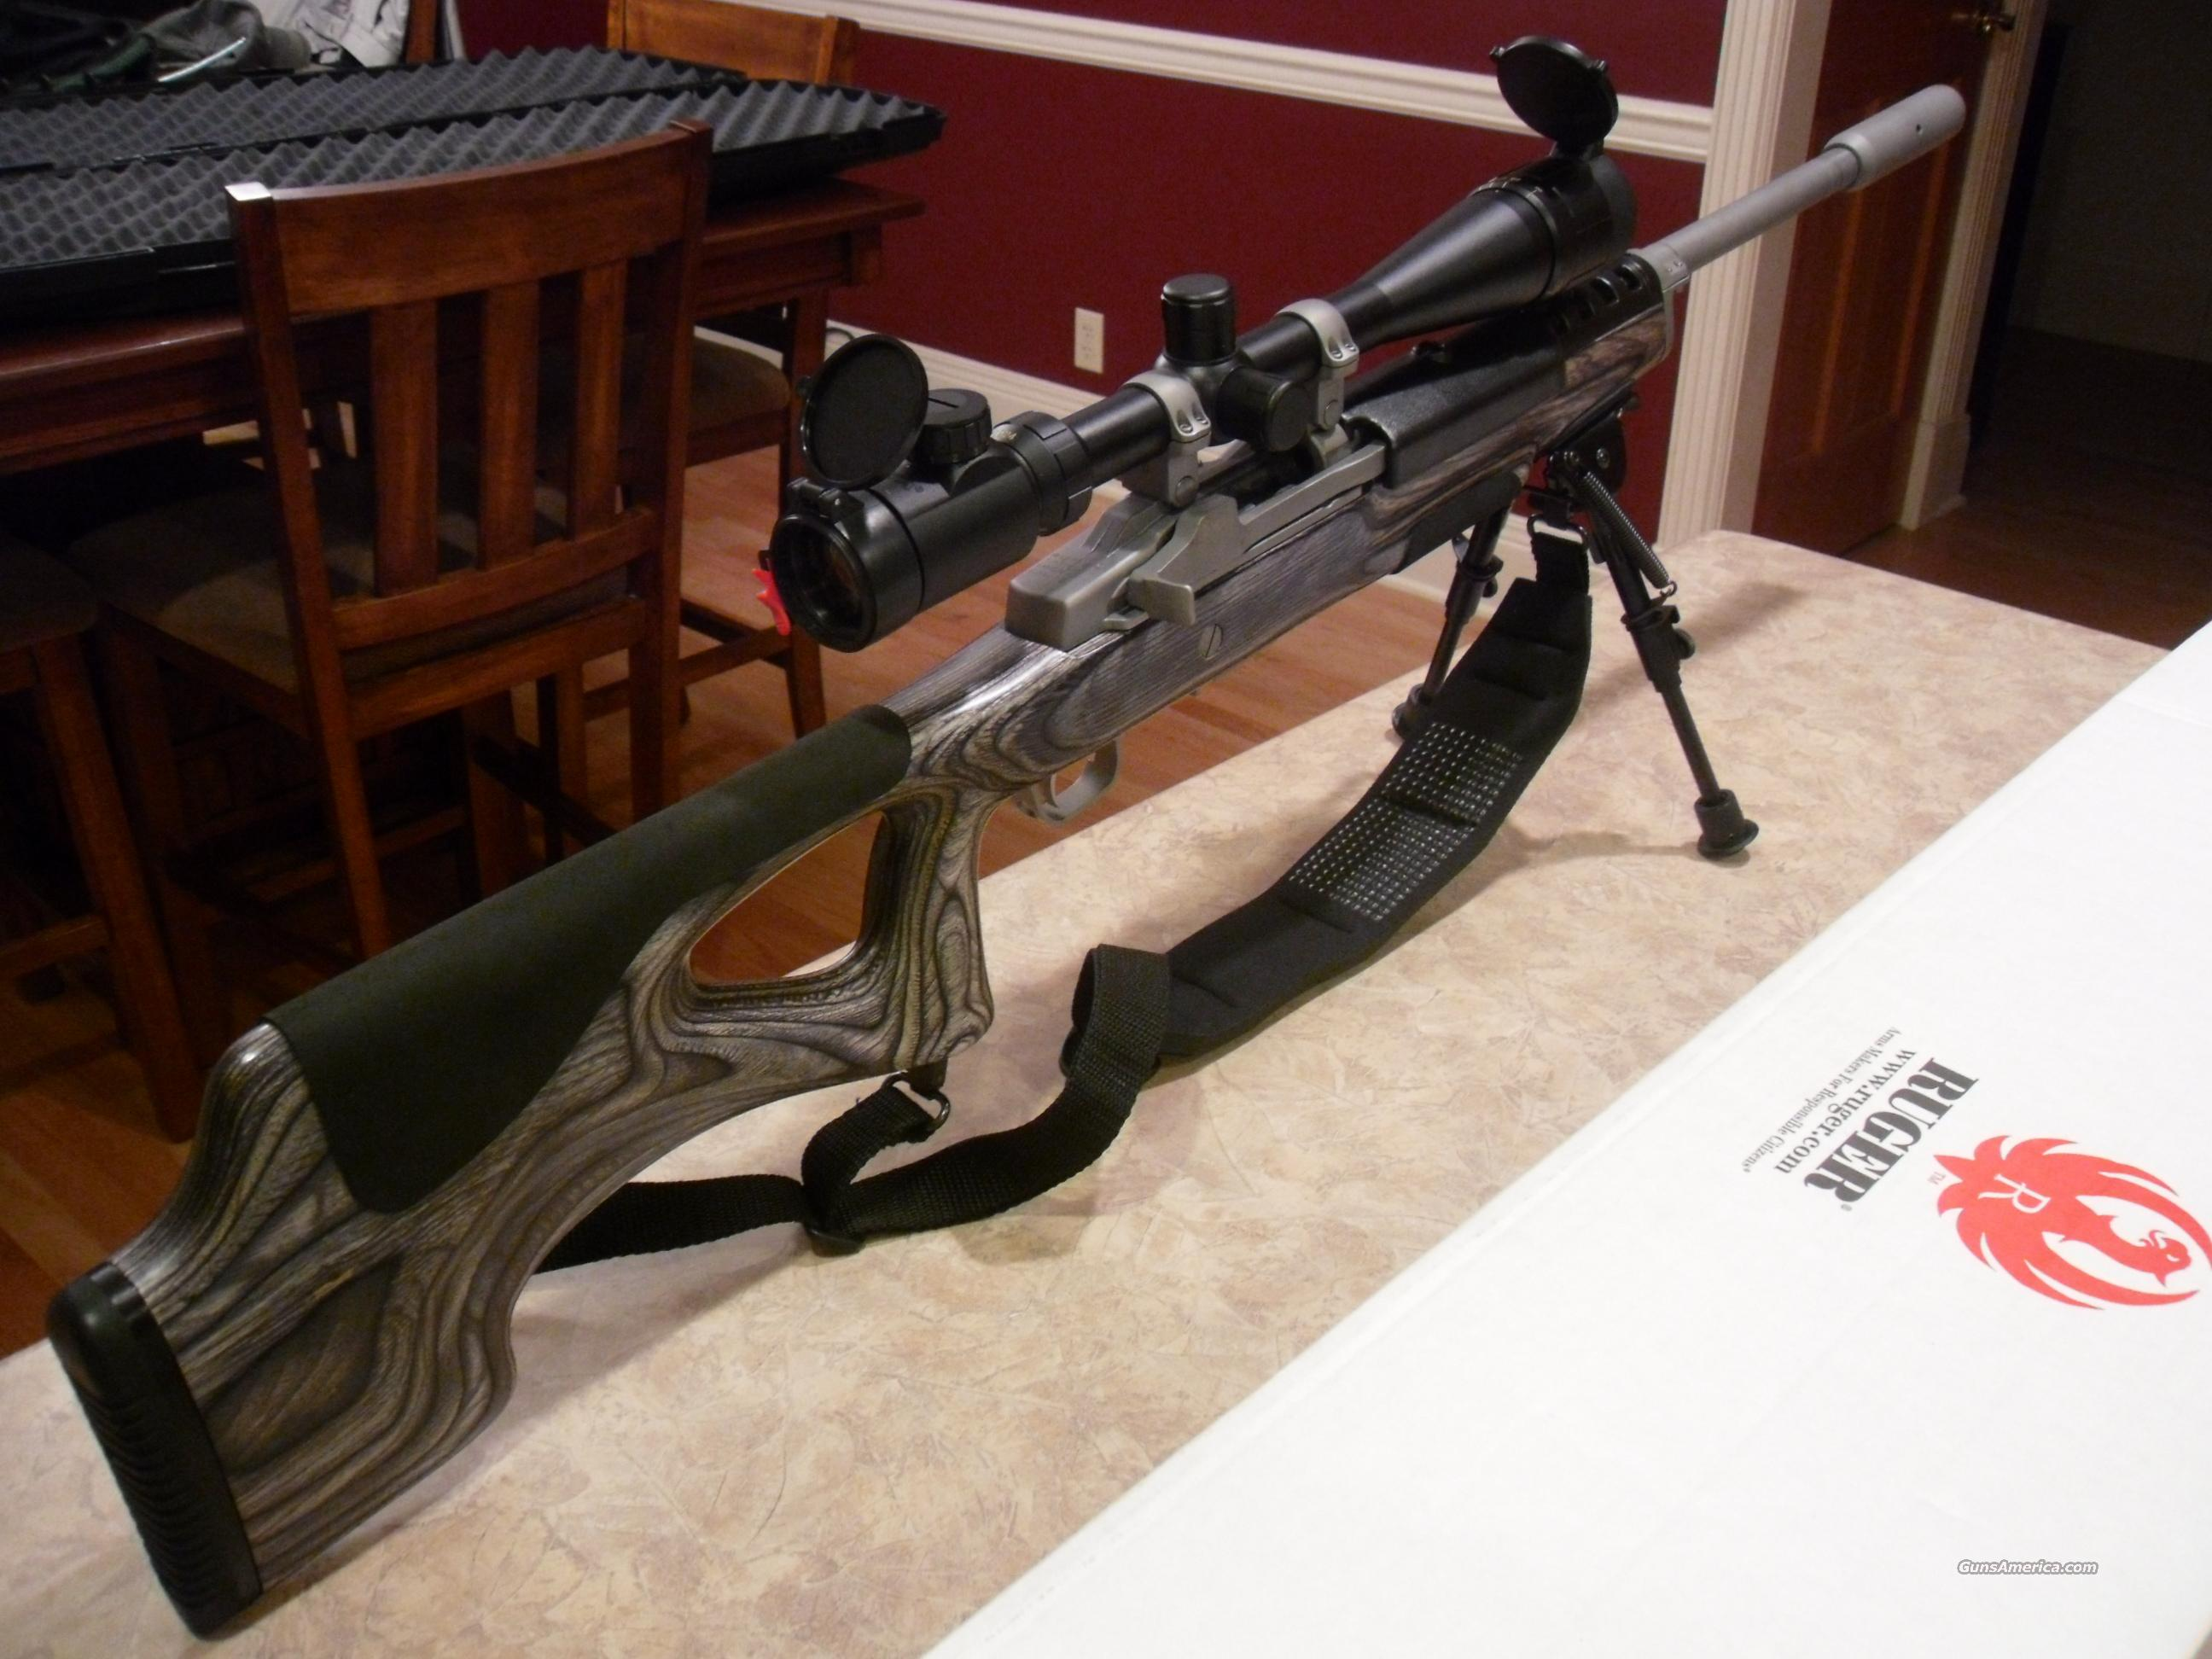 Ruger Mini 14  223 Laminate, Target ranch Bull Barrel, Thumb Hole Stock!  lots of Accessories Trades!!!!!! Free Shipping!